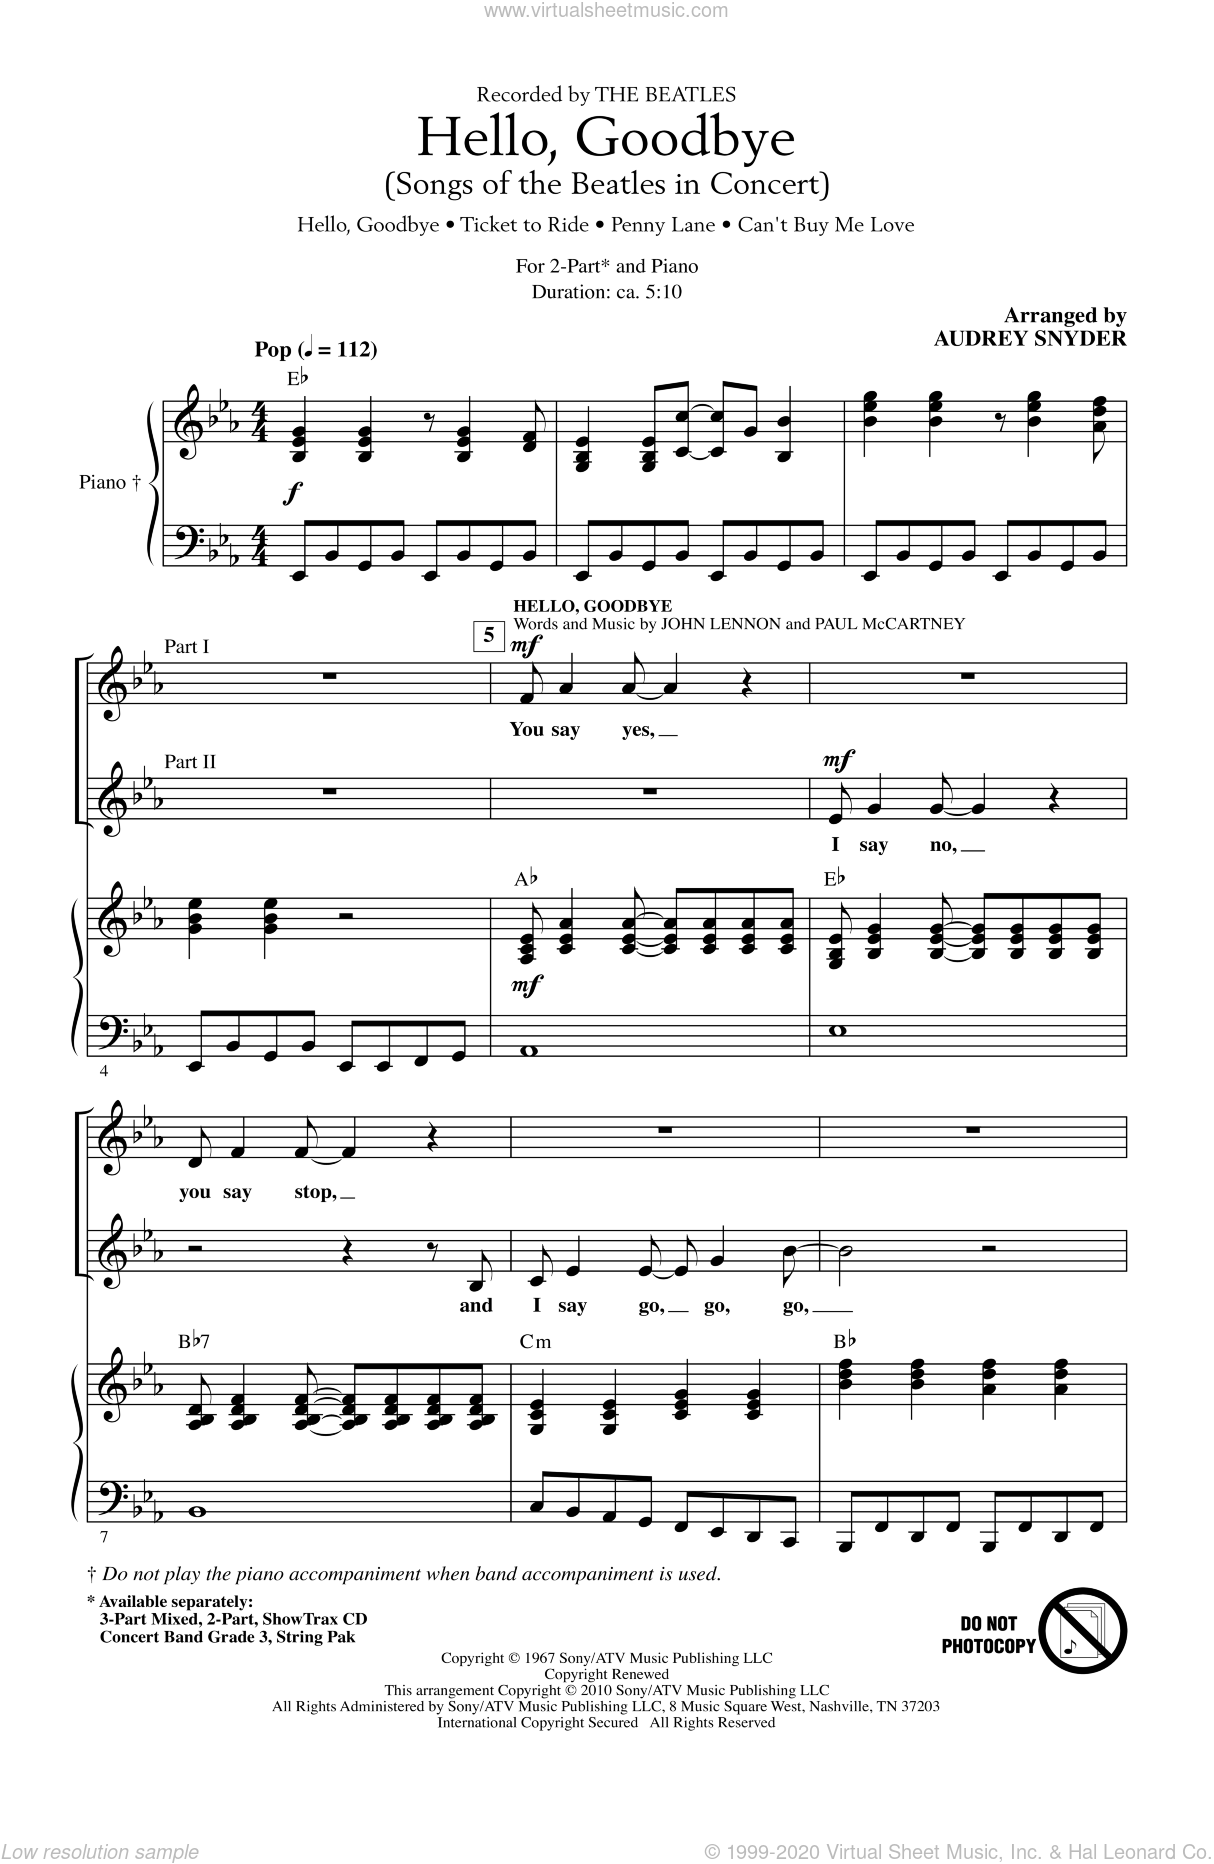 Hello, Goodbye (Songs Of The Beatles In Concert) sheet music for choir and piano (duets) by Paul McCartney, Audrey Snyder, John Lennon and The Beatles. Score Image Preview.